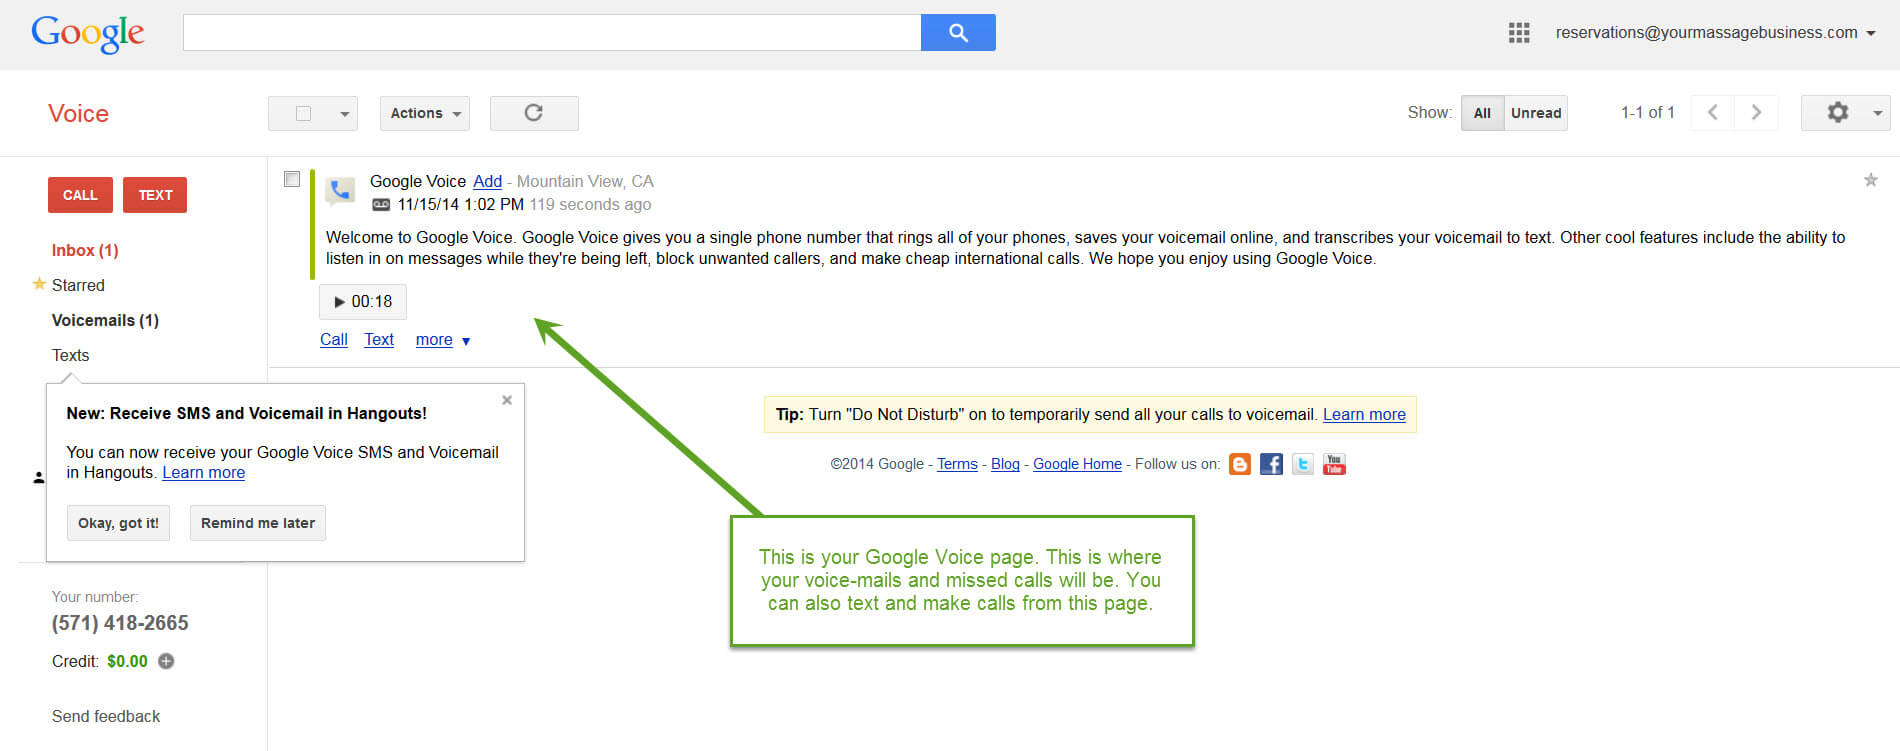 Set Up Google Voice For Your Massage Business: Google Voice Page